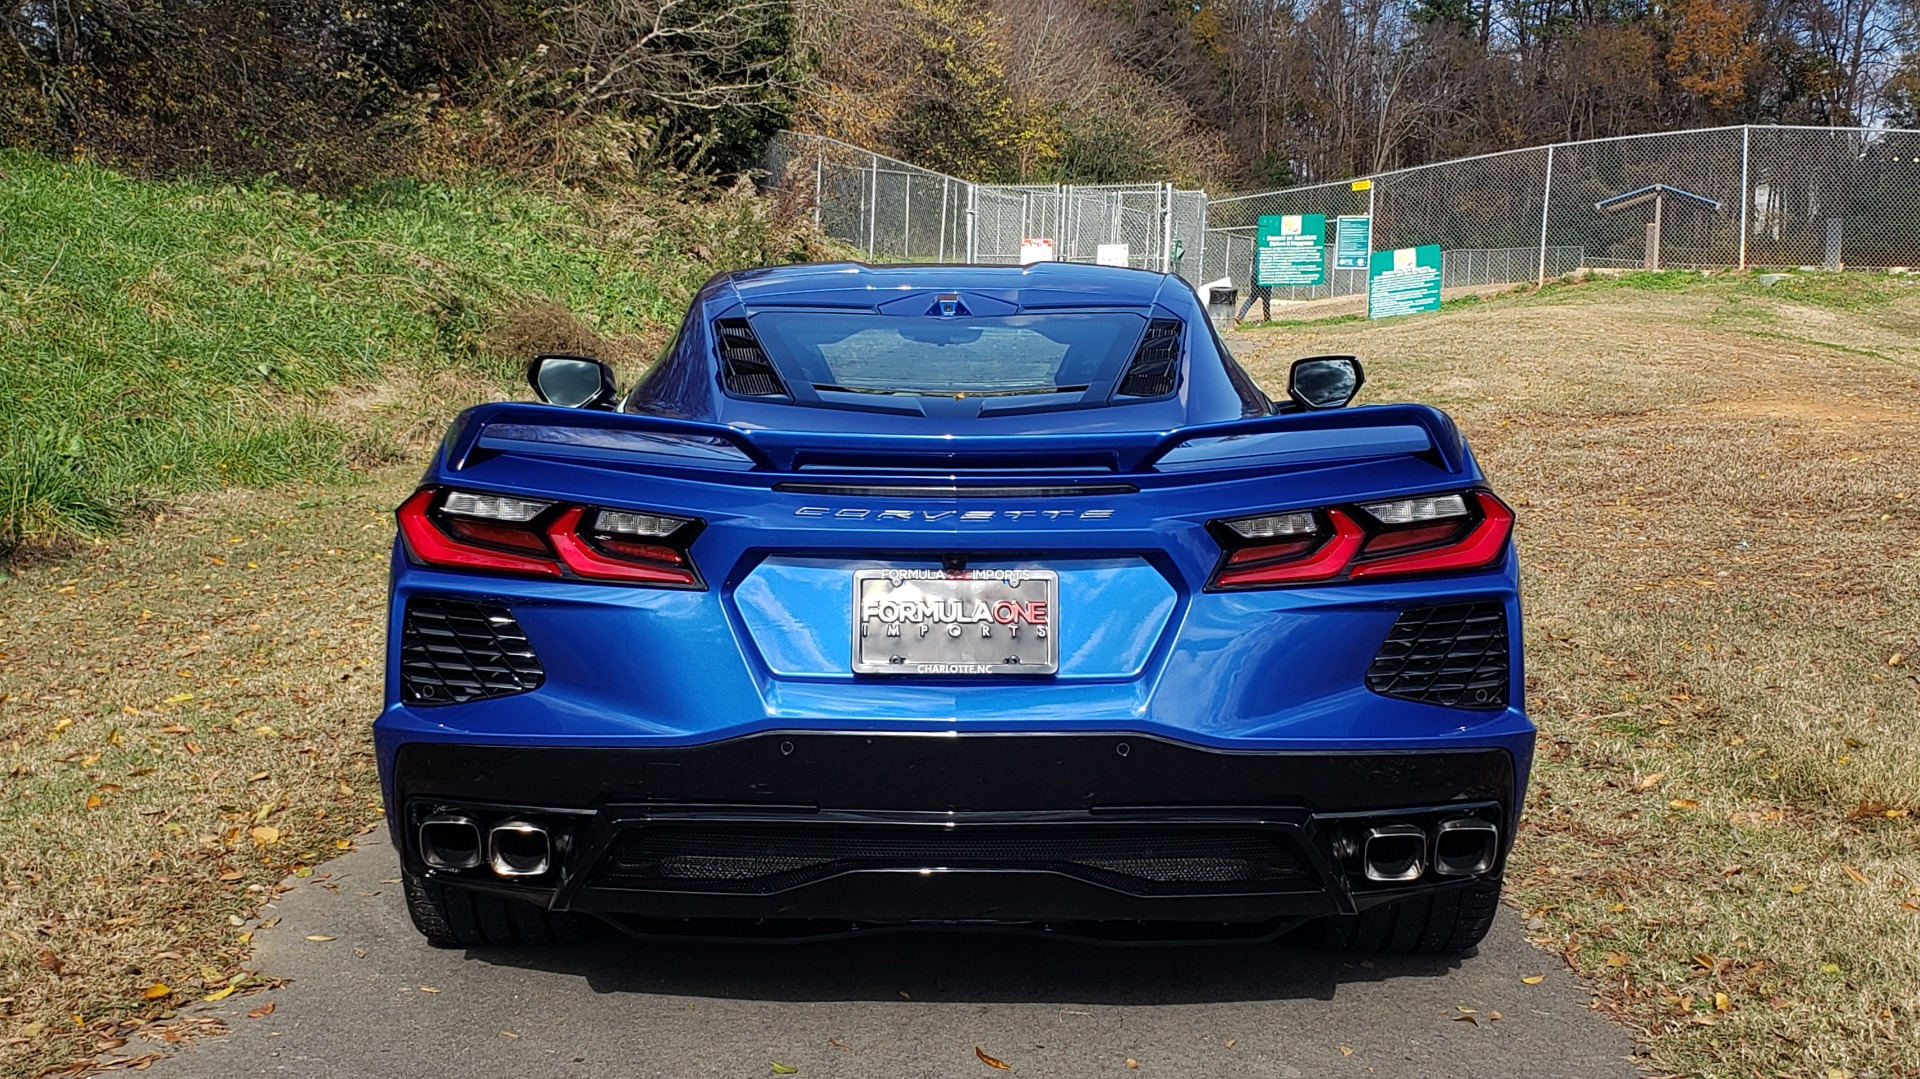 Used 2020 Chevrolet C8 CORVETTE STINGRAY 2LT COUPE / NAV / HUD / BOSE / GT2 SEATS / FRONT LIFT / REARVIEW for sale $98,999 at Formula Imports in Charlotte NC 28227 19